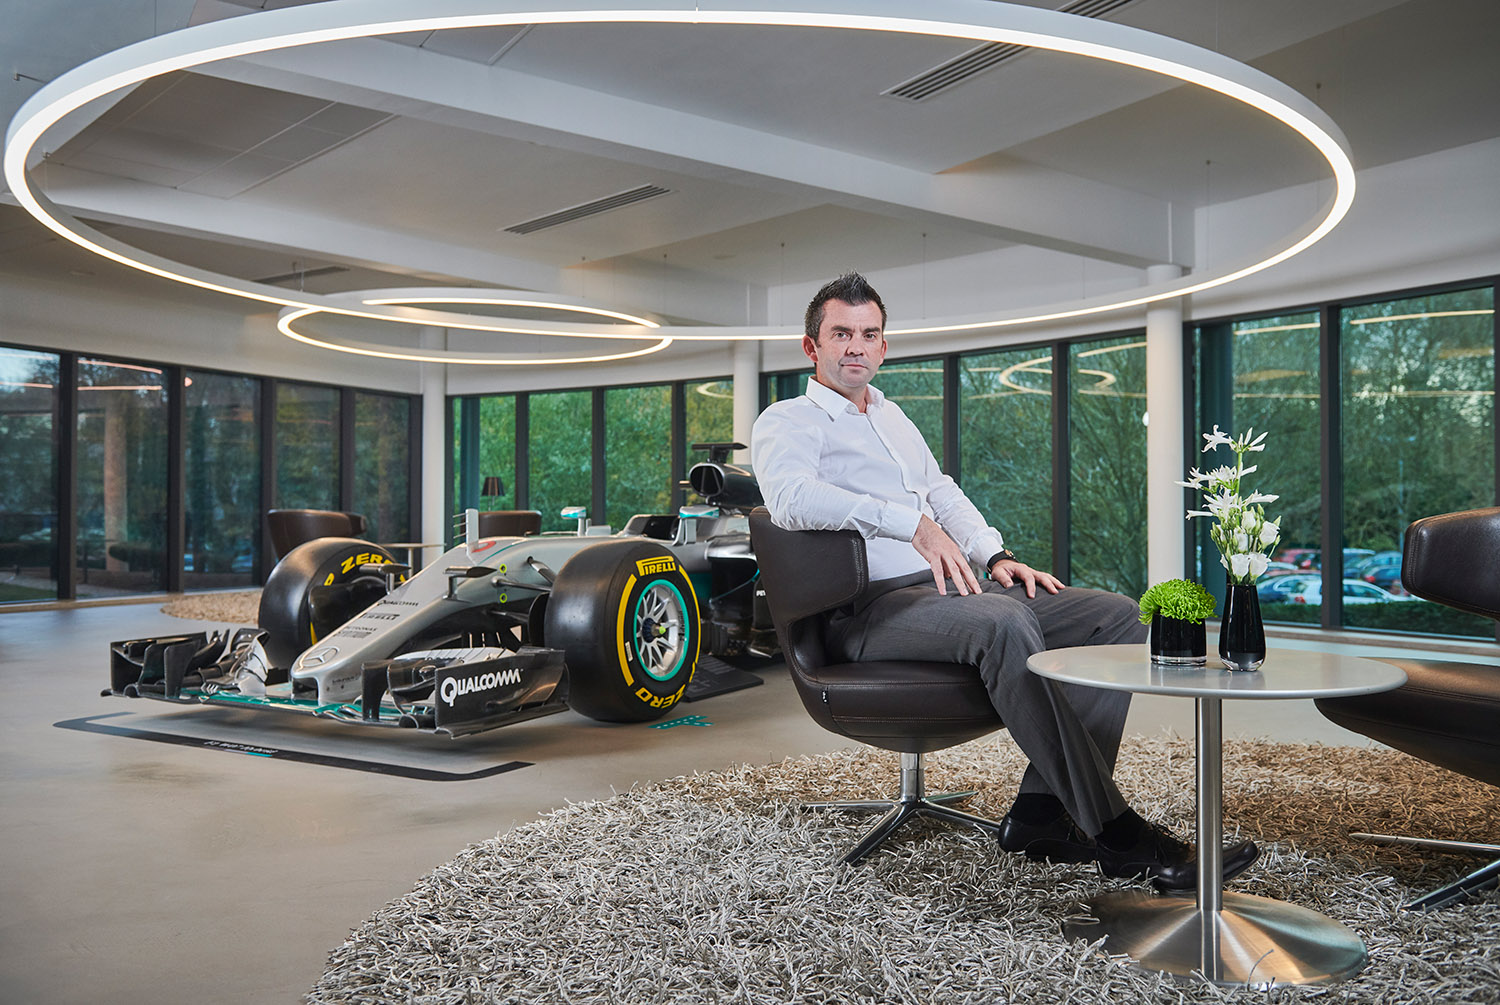 Google story about Mercedes Formula one team